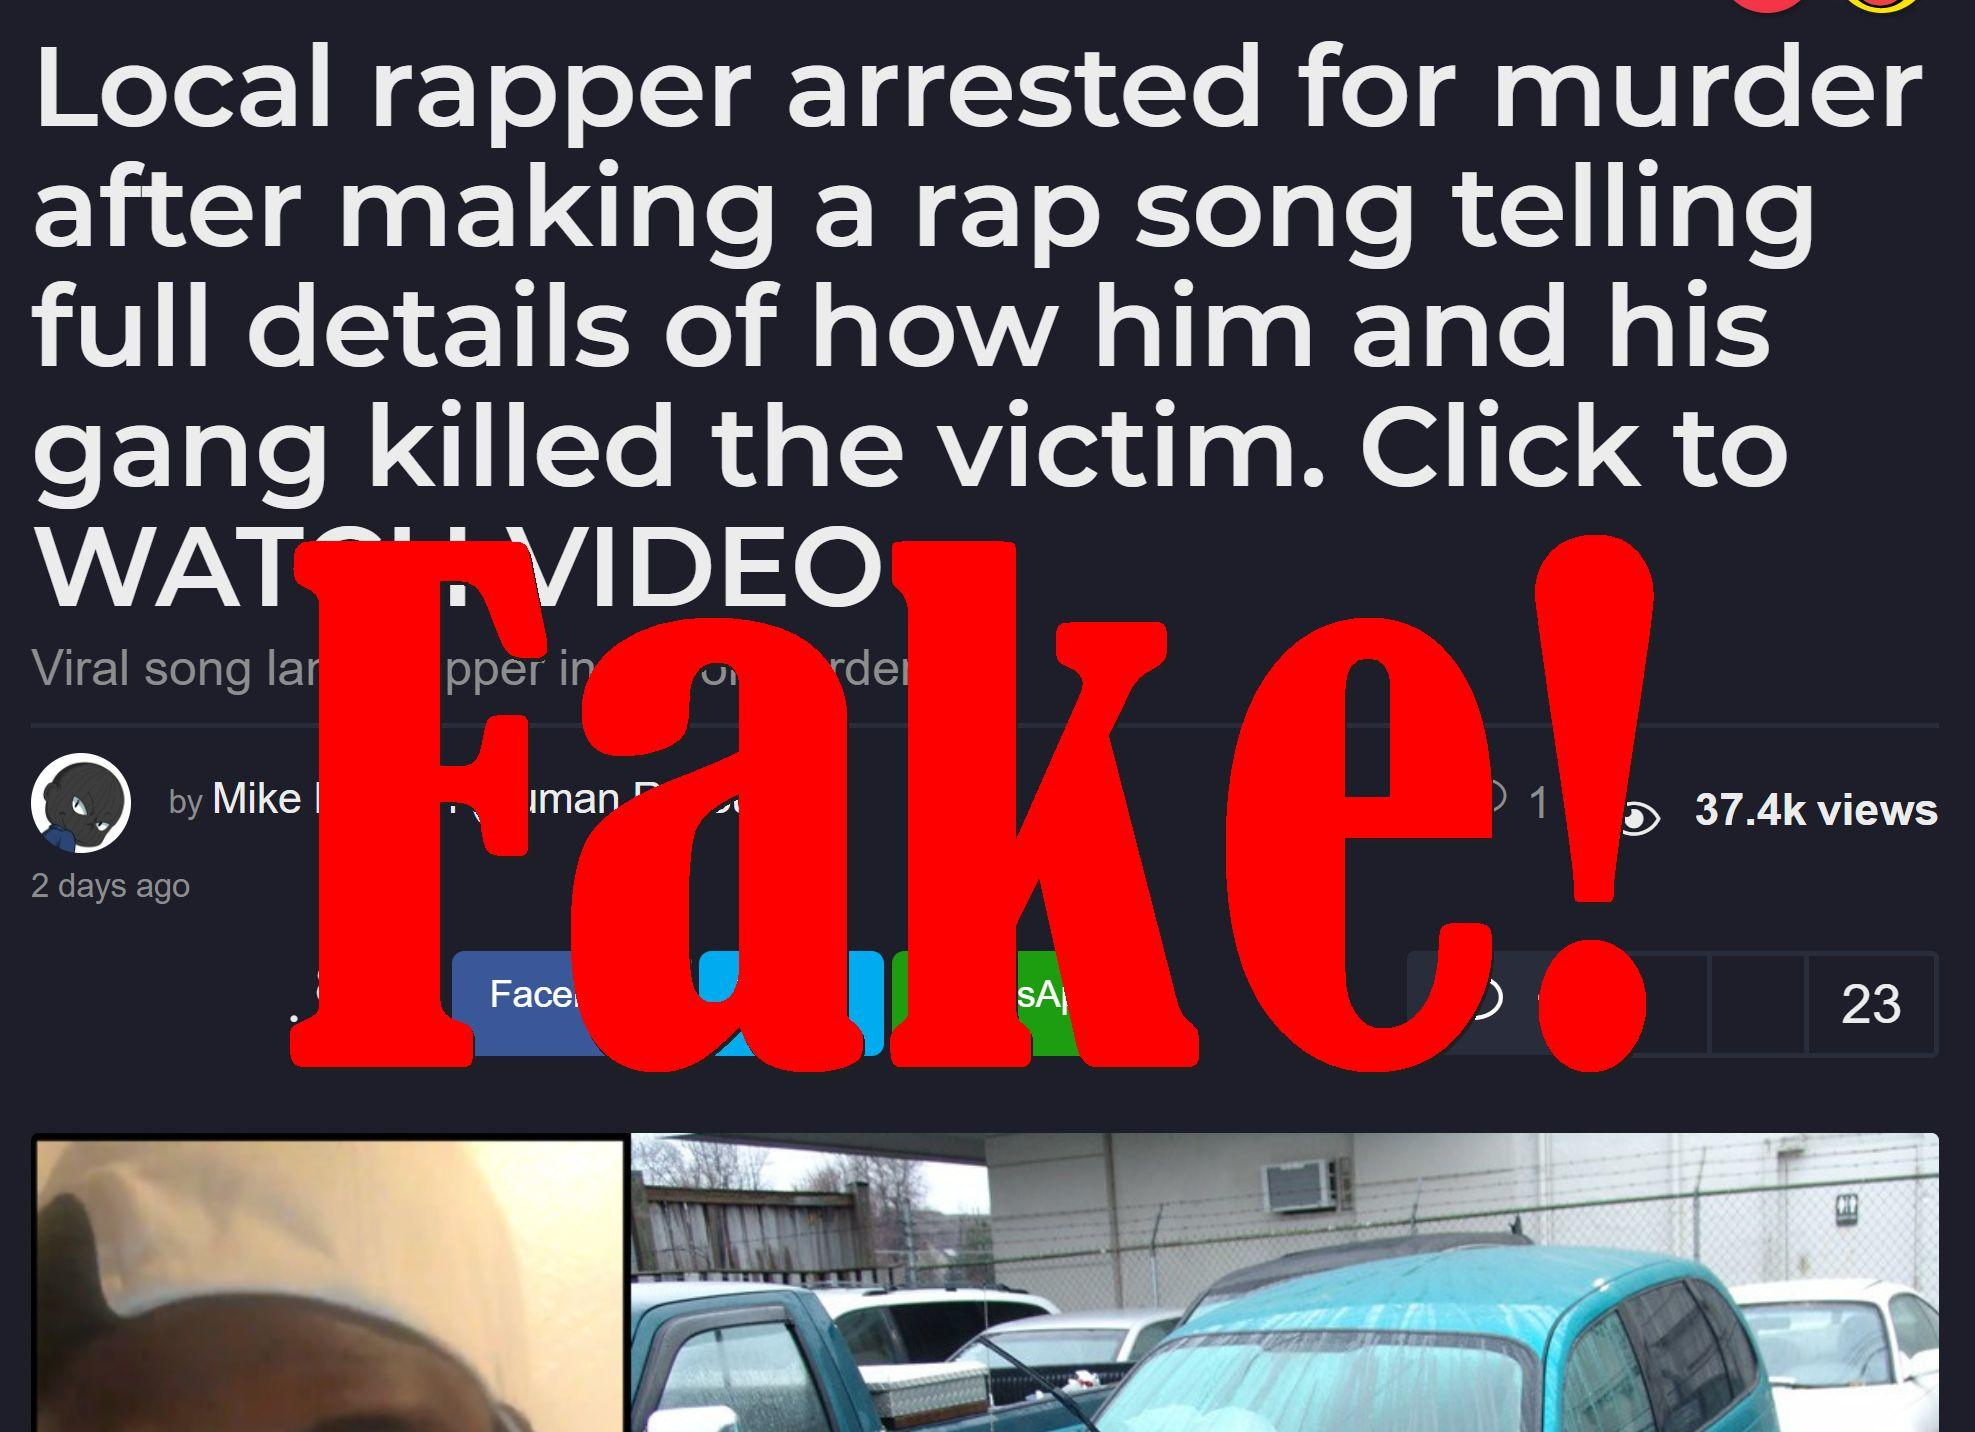 Fake News: Local Rapper NOT Arrested For Murder After Making Rap Song Telling Full Details